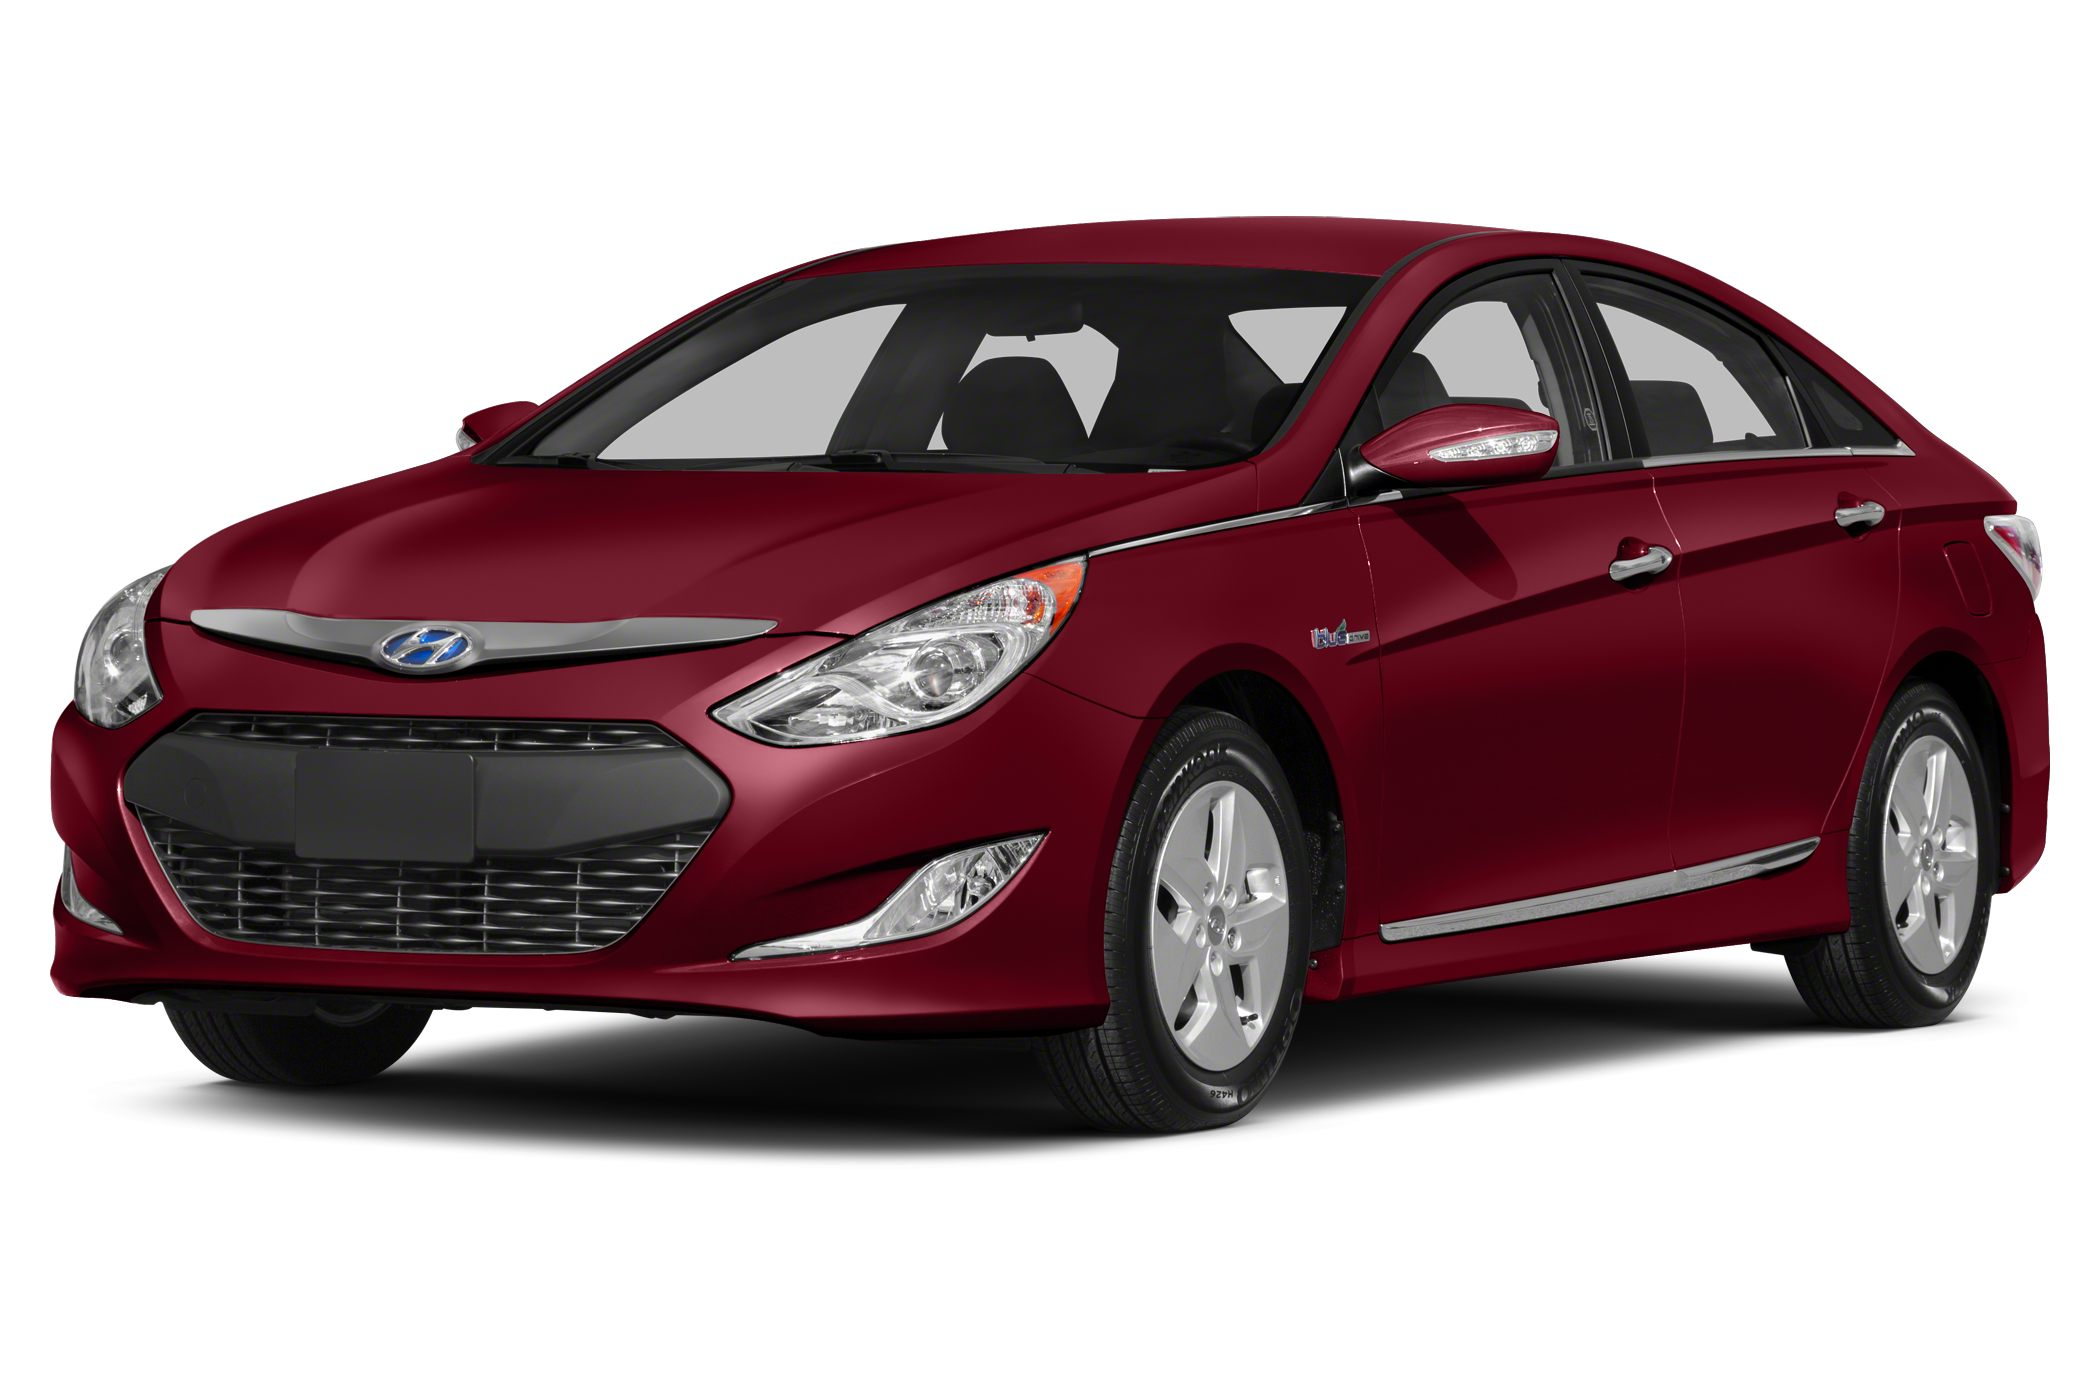 2012 Hyundai Sonata Hybrid Base Sedan for sale in Mesa for $17,911 with 20,106 miles.